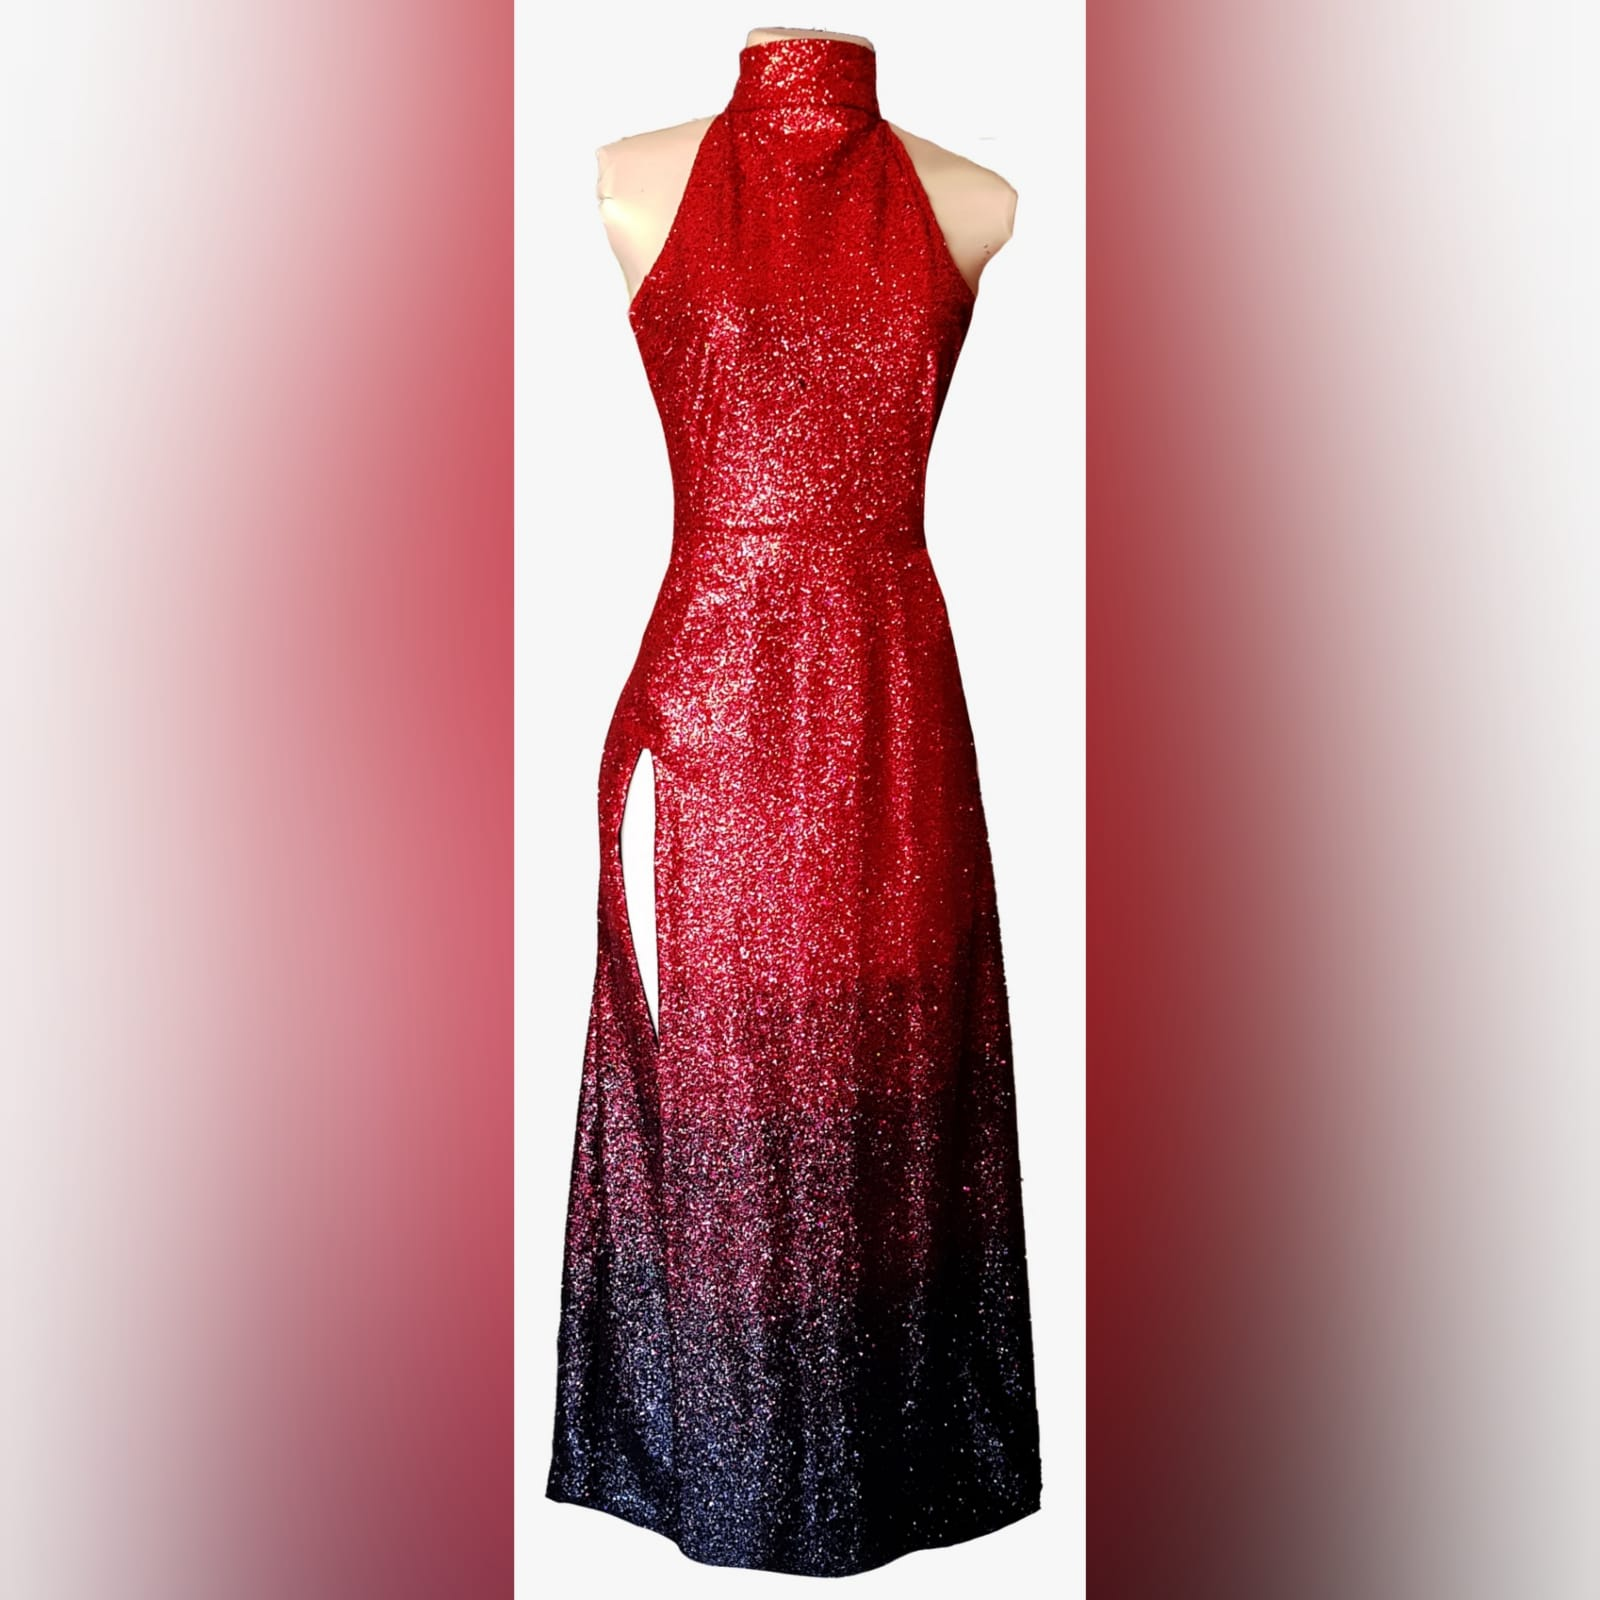 Glittered red and black ombre evening dress 11 want to be the shine at your prom gala? Wear a stunning fully glitter red and black ombre evening dress. With a high slit for a touch of sexy to your radical look.